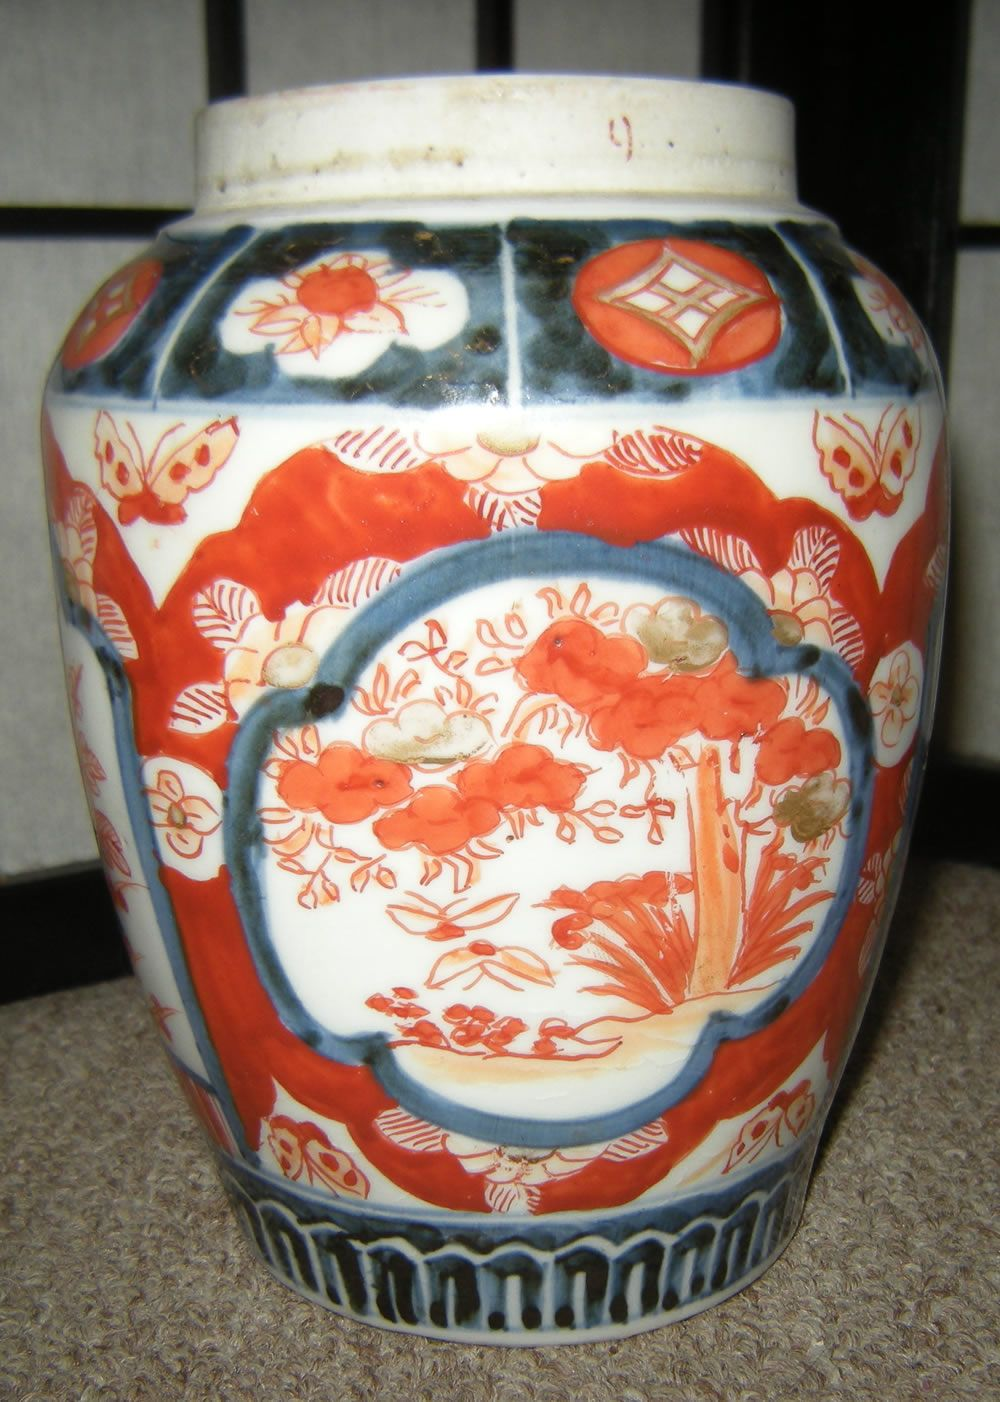 Edo period arita akae imari japanese antique porcelain edo period arita akae imari japanese antique porcelain reviewsmspy